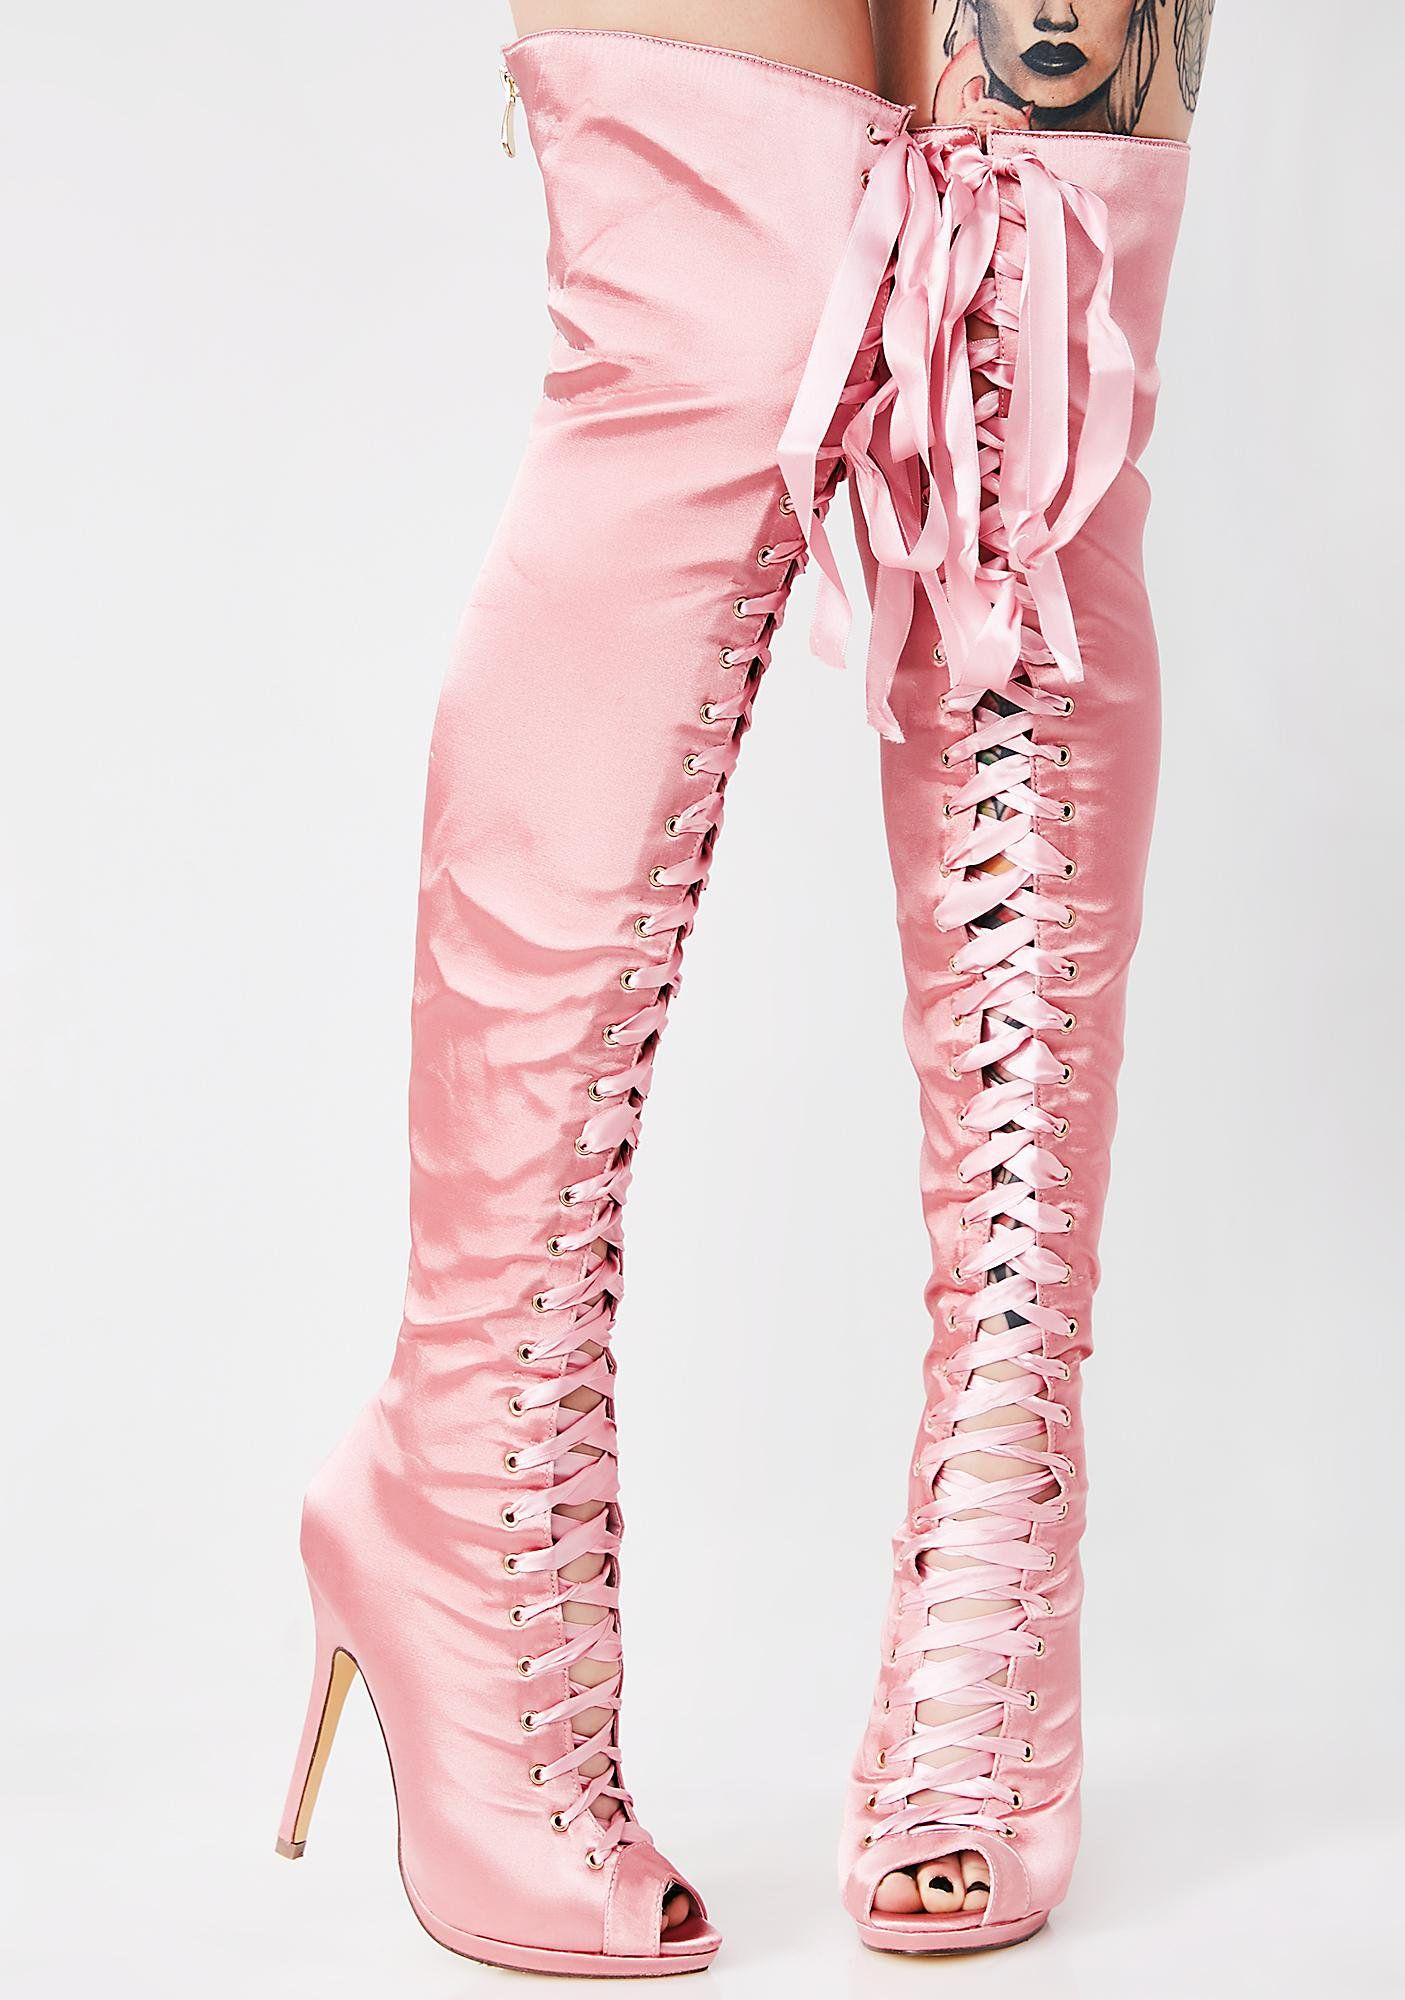 65dd4f1074e83 Playful Love Thigh High Boots cuz you're ready to play for it all. These  satin babies have peep toes, lace-ups for dayz on the front and zip  closures.